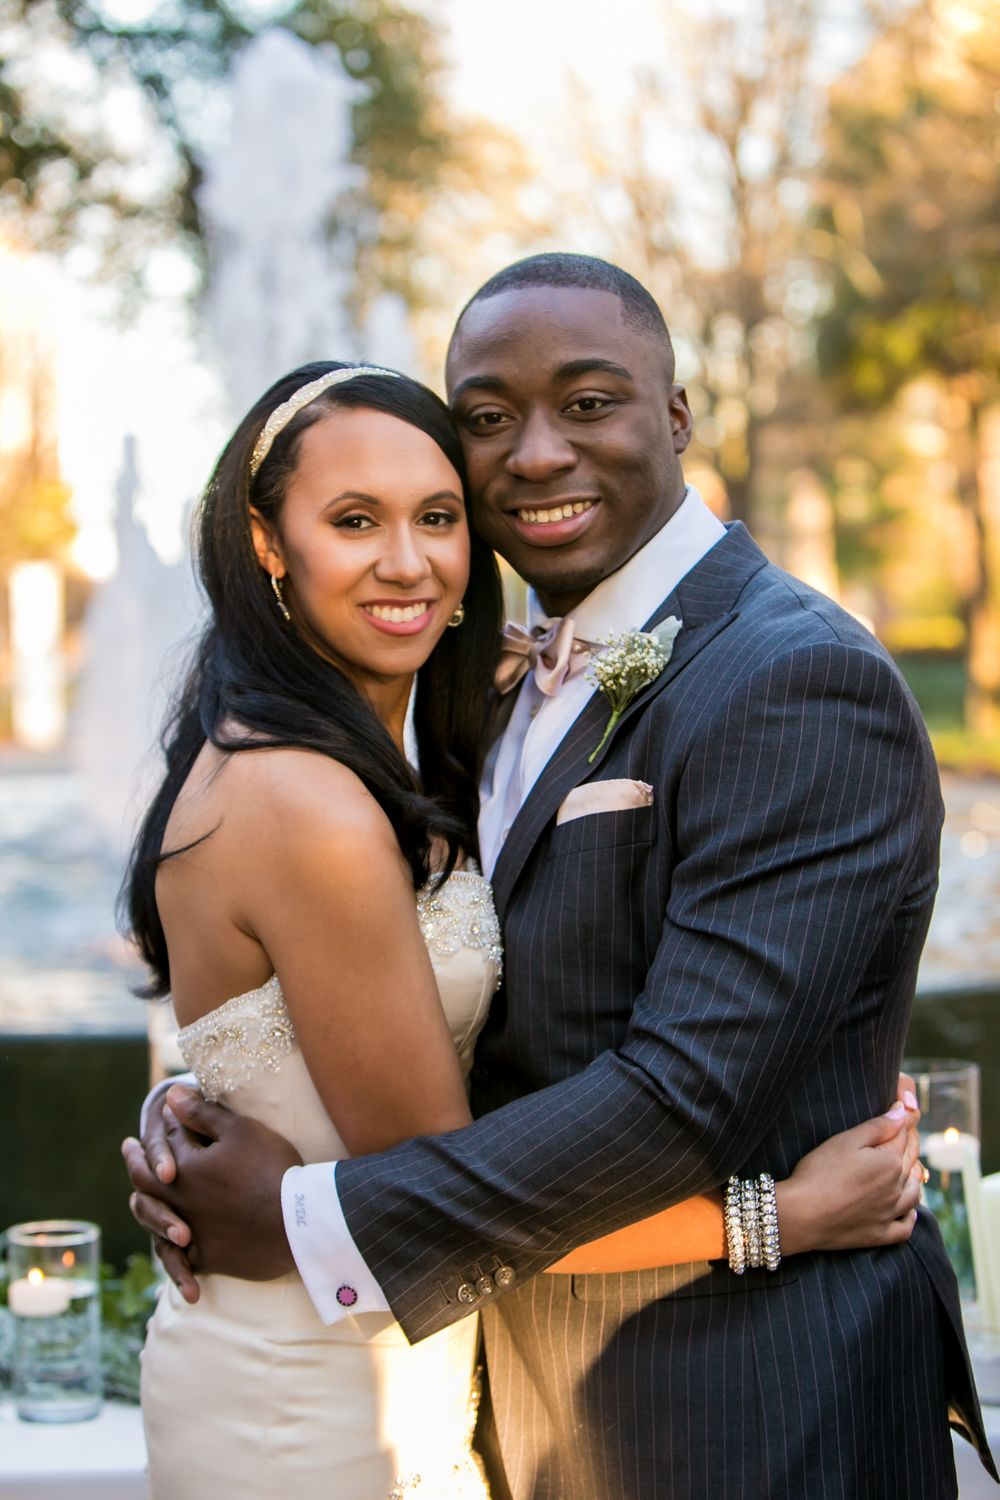 Miranda and Marcus Lattimore's wedding portrait at the Lace House in Columbia, SC. Ph